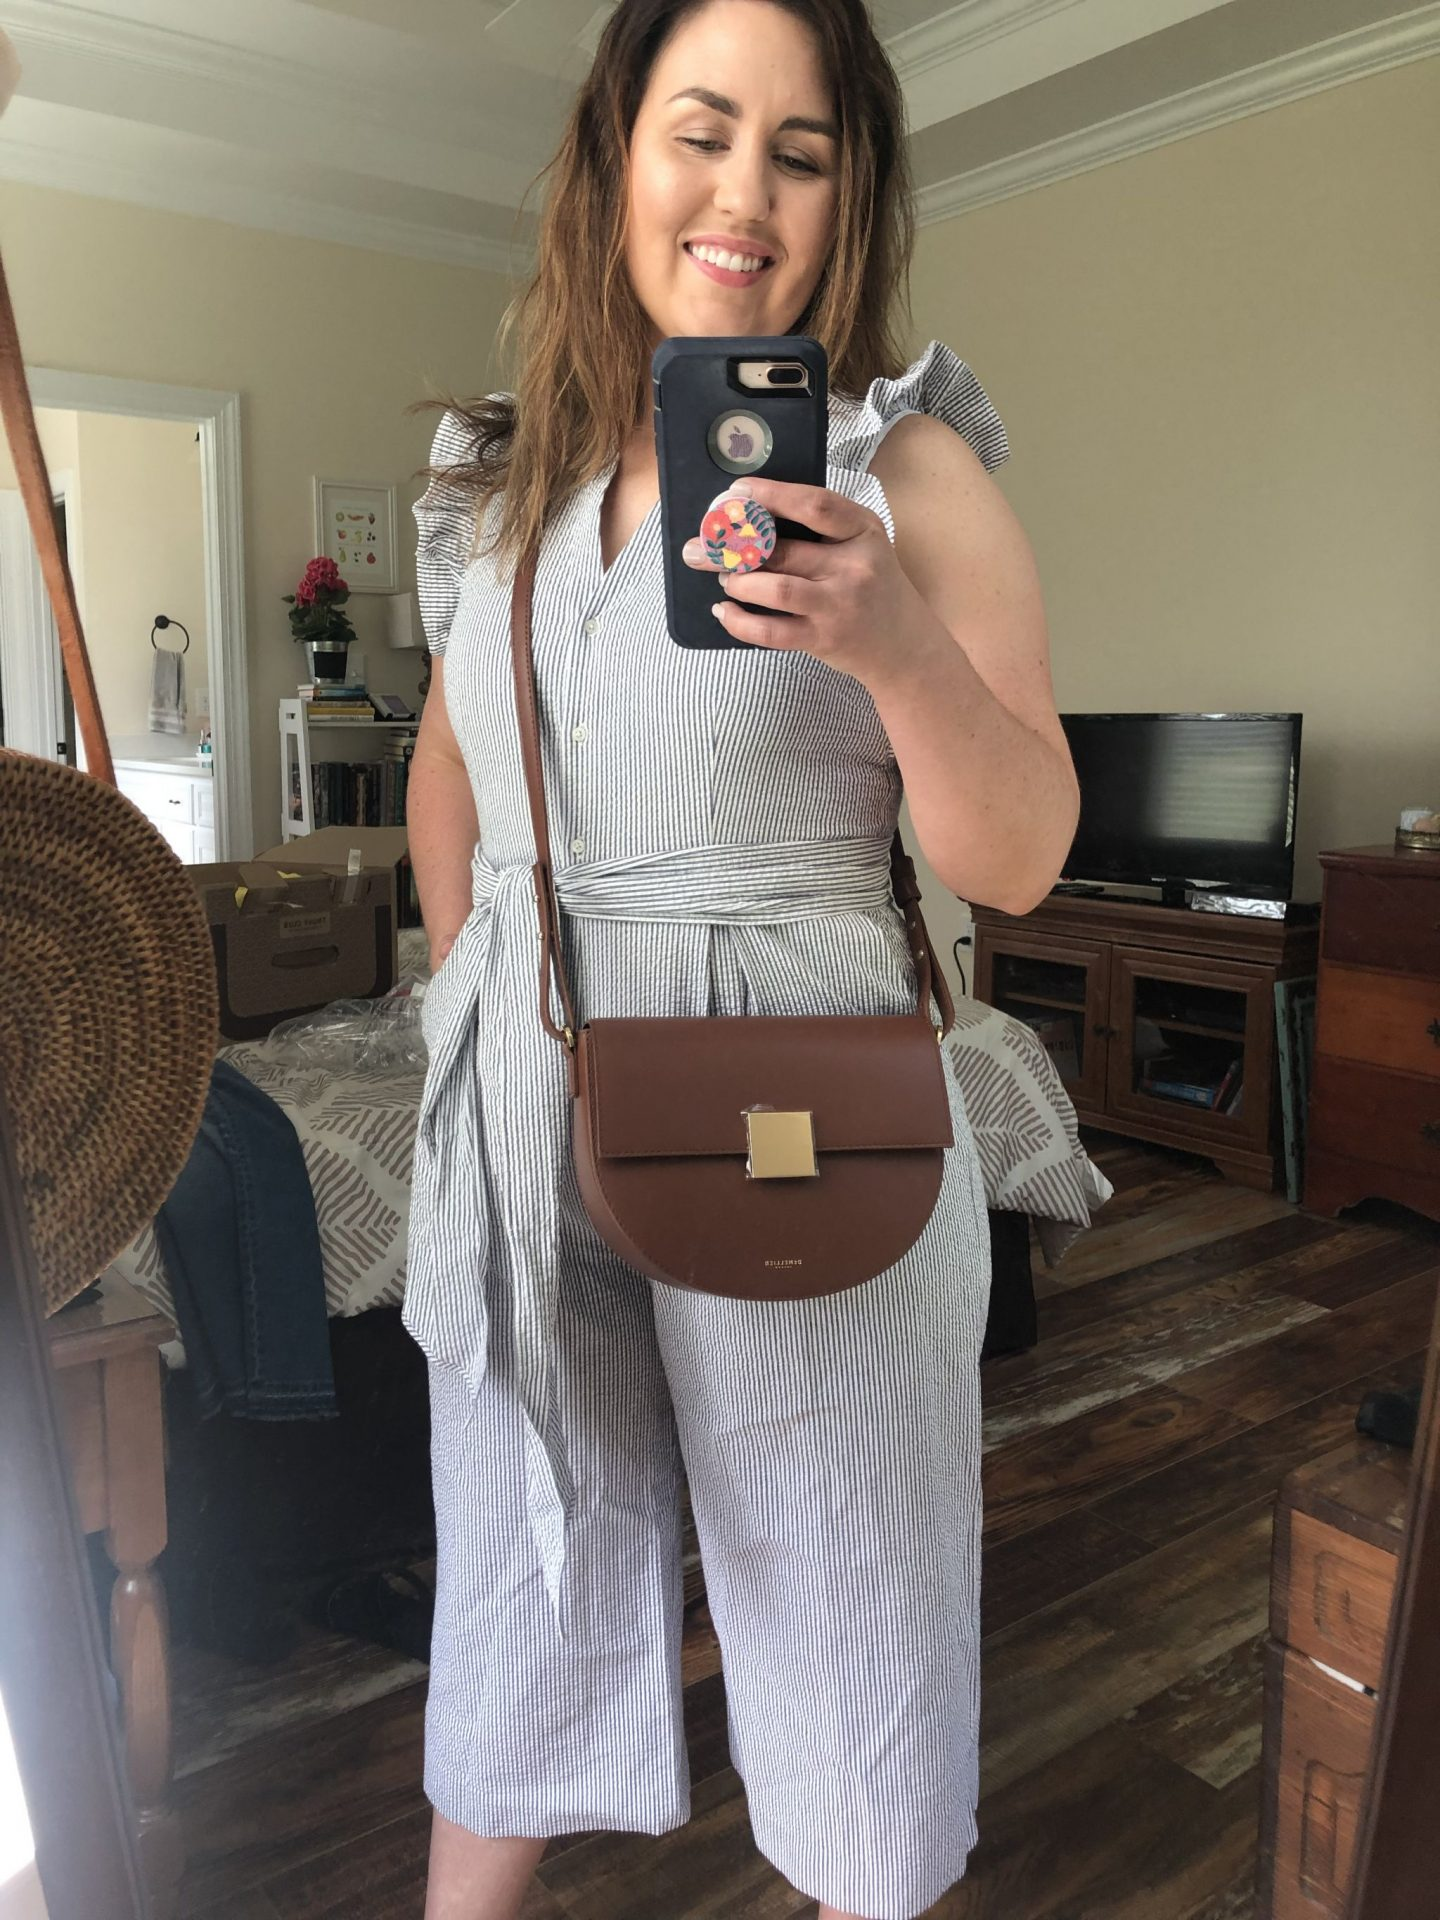 NC blogger Rebecca Lately is sharing her second Trunk Club review. She requested a summer refresh trunk. Check out what she got & what she sent back!